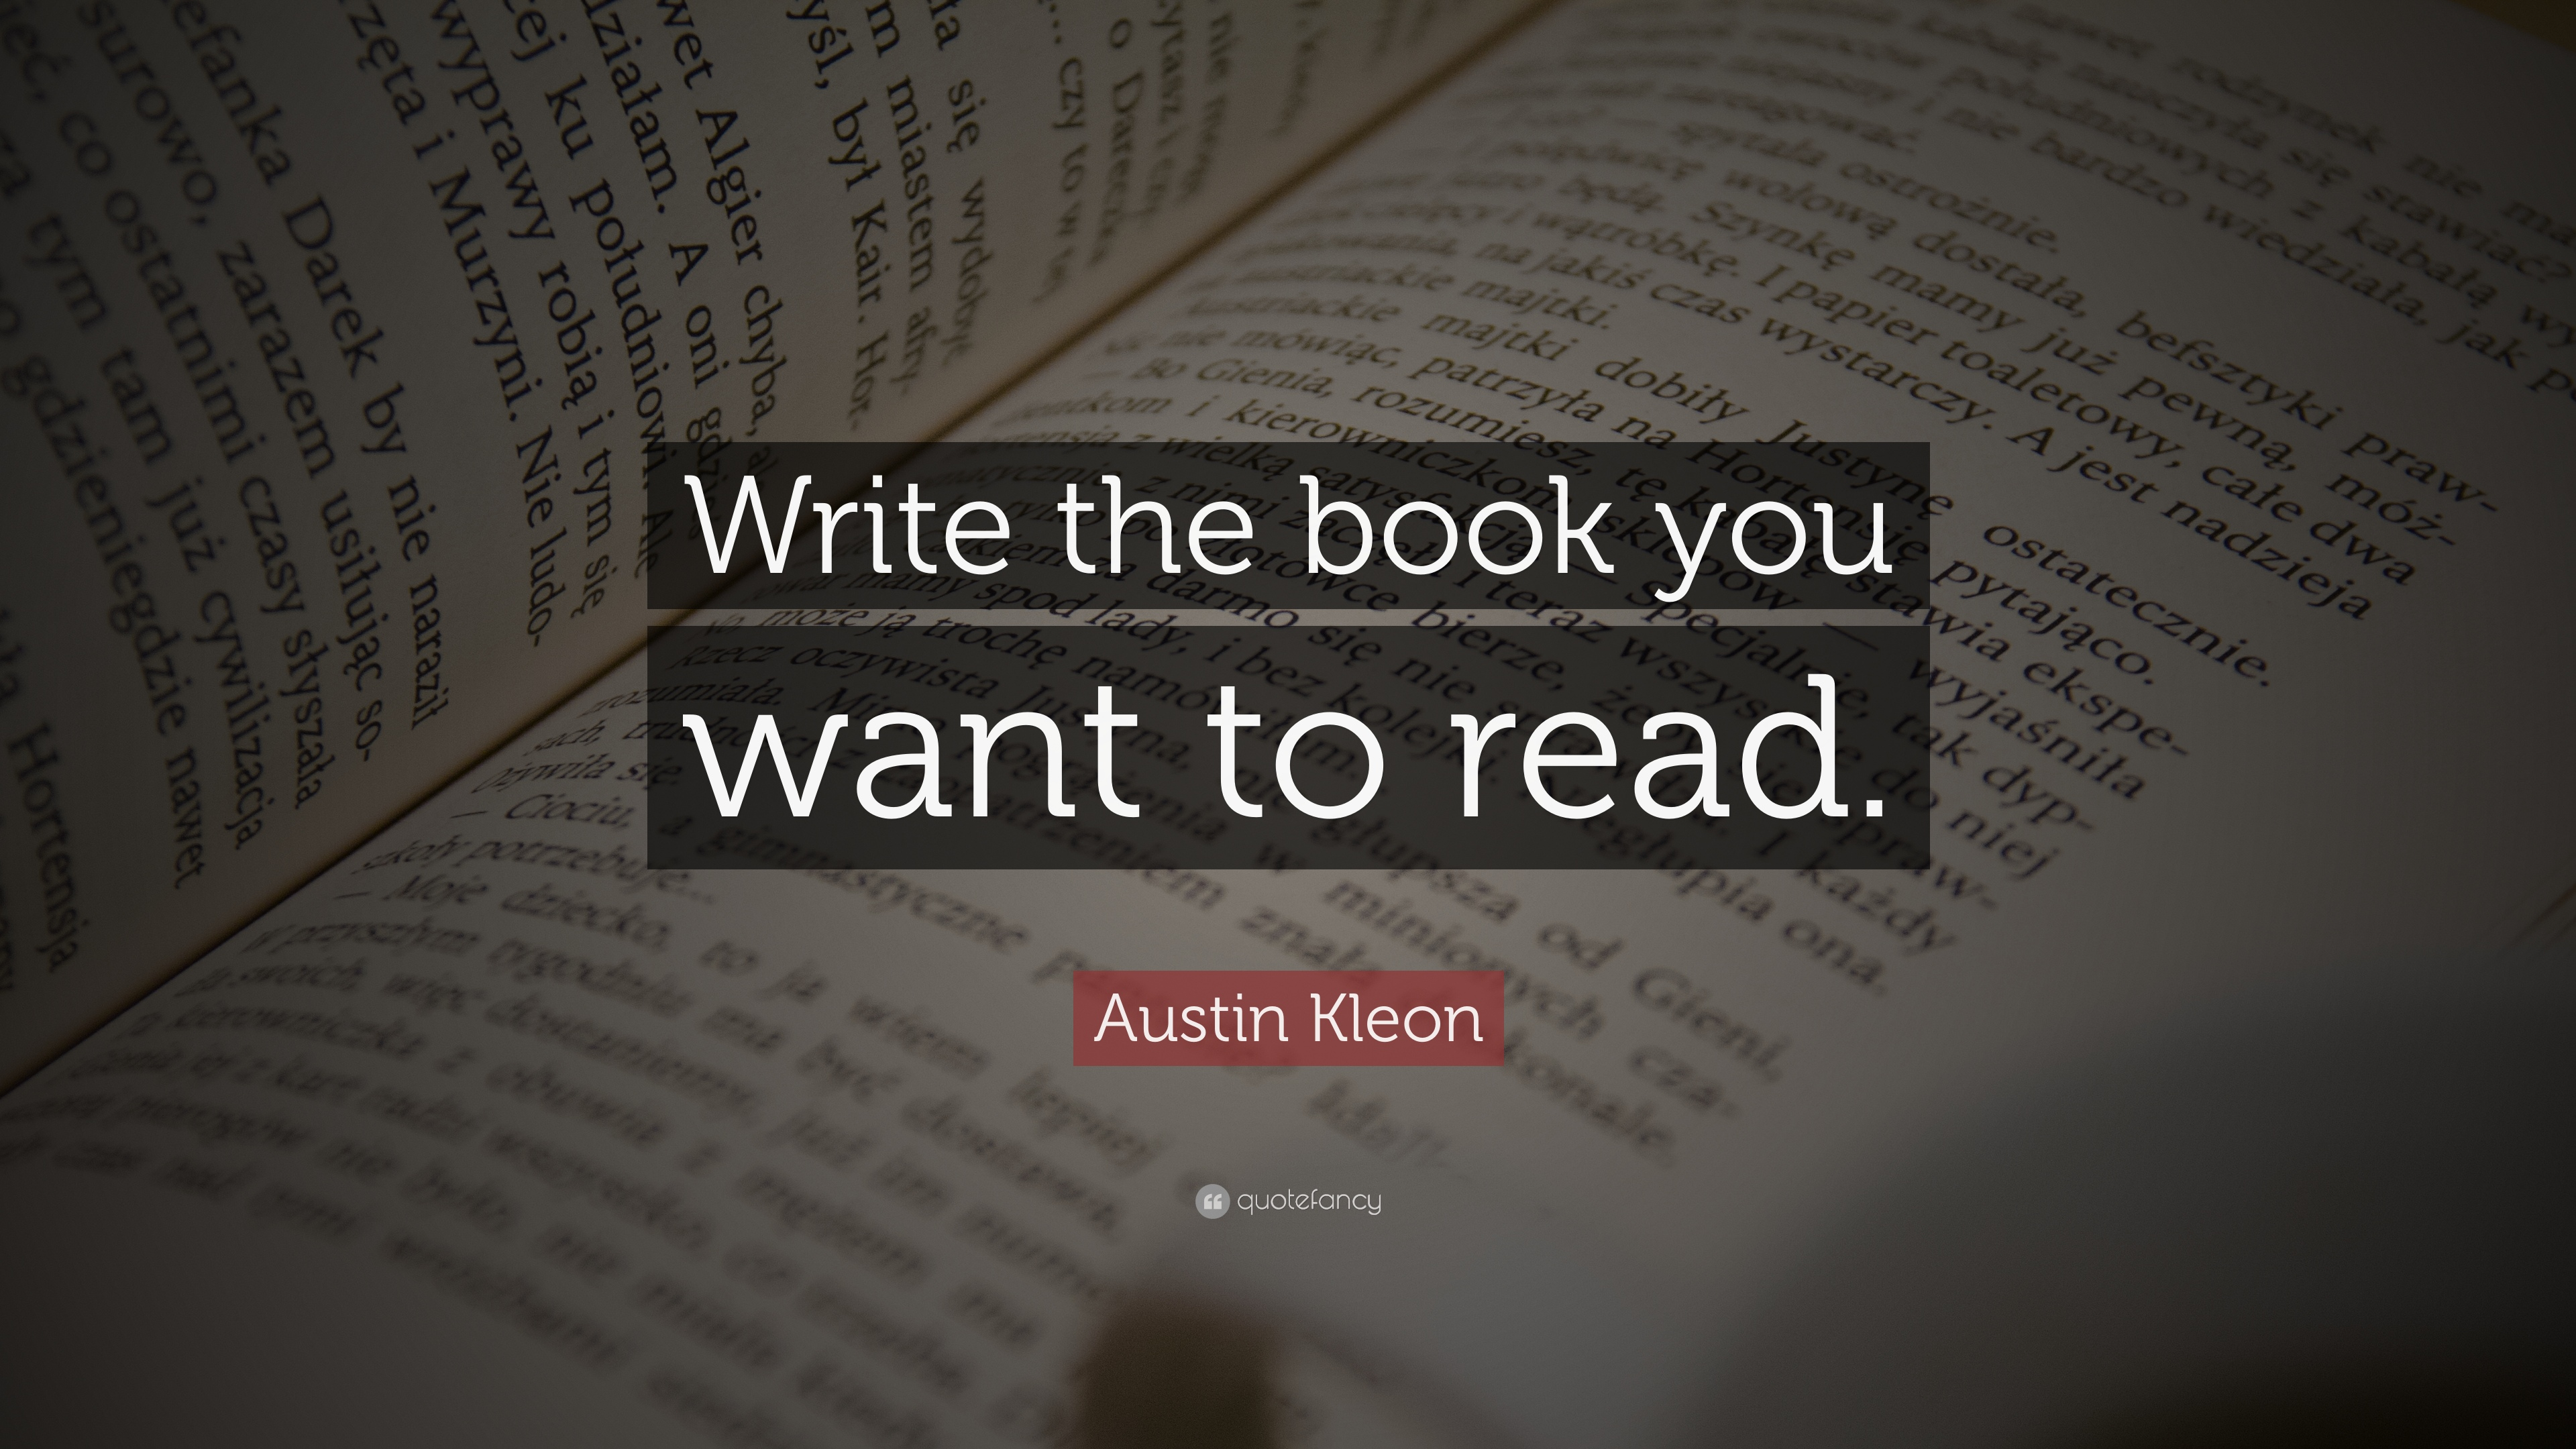 Write the book you want to read